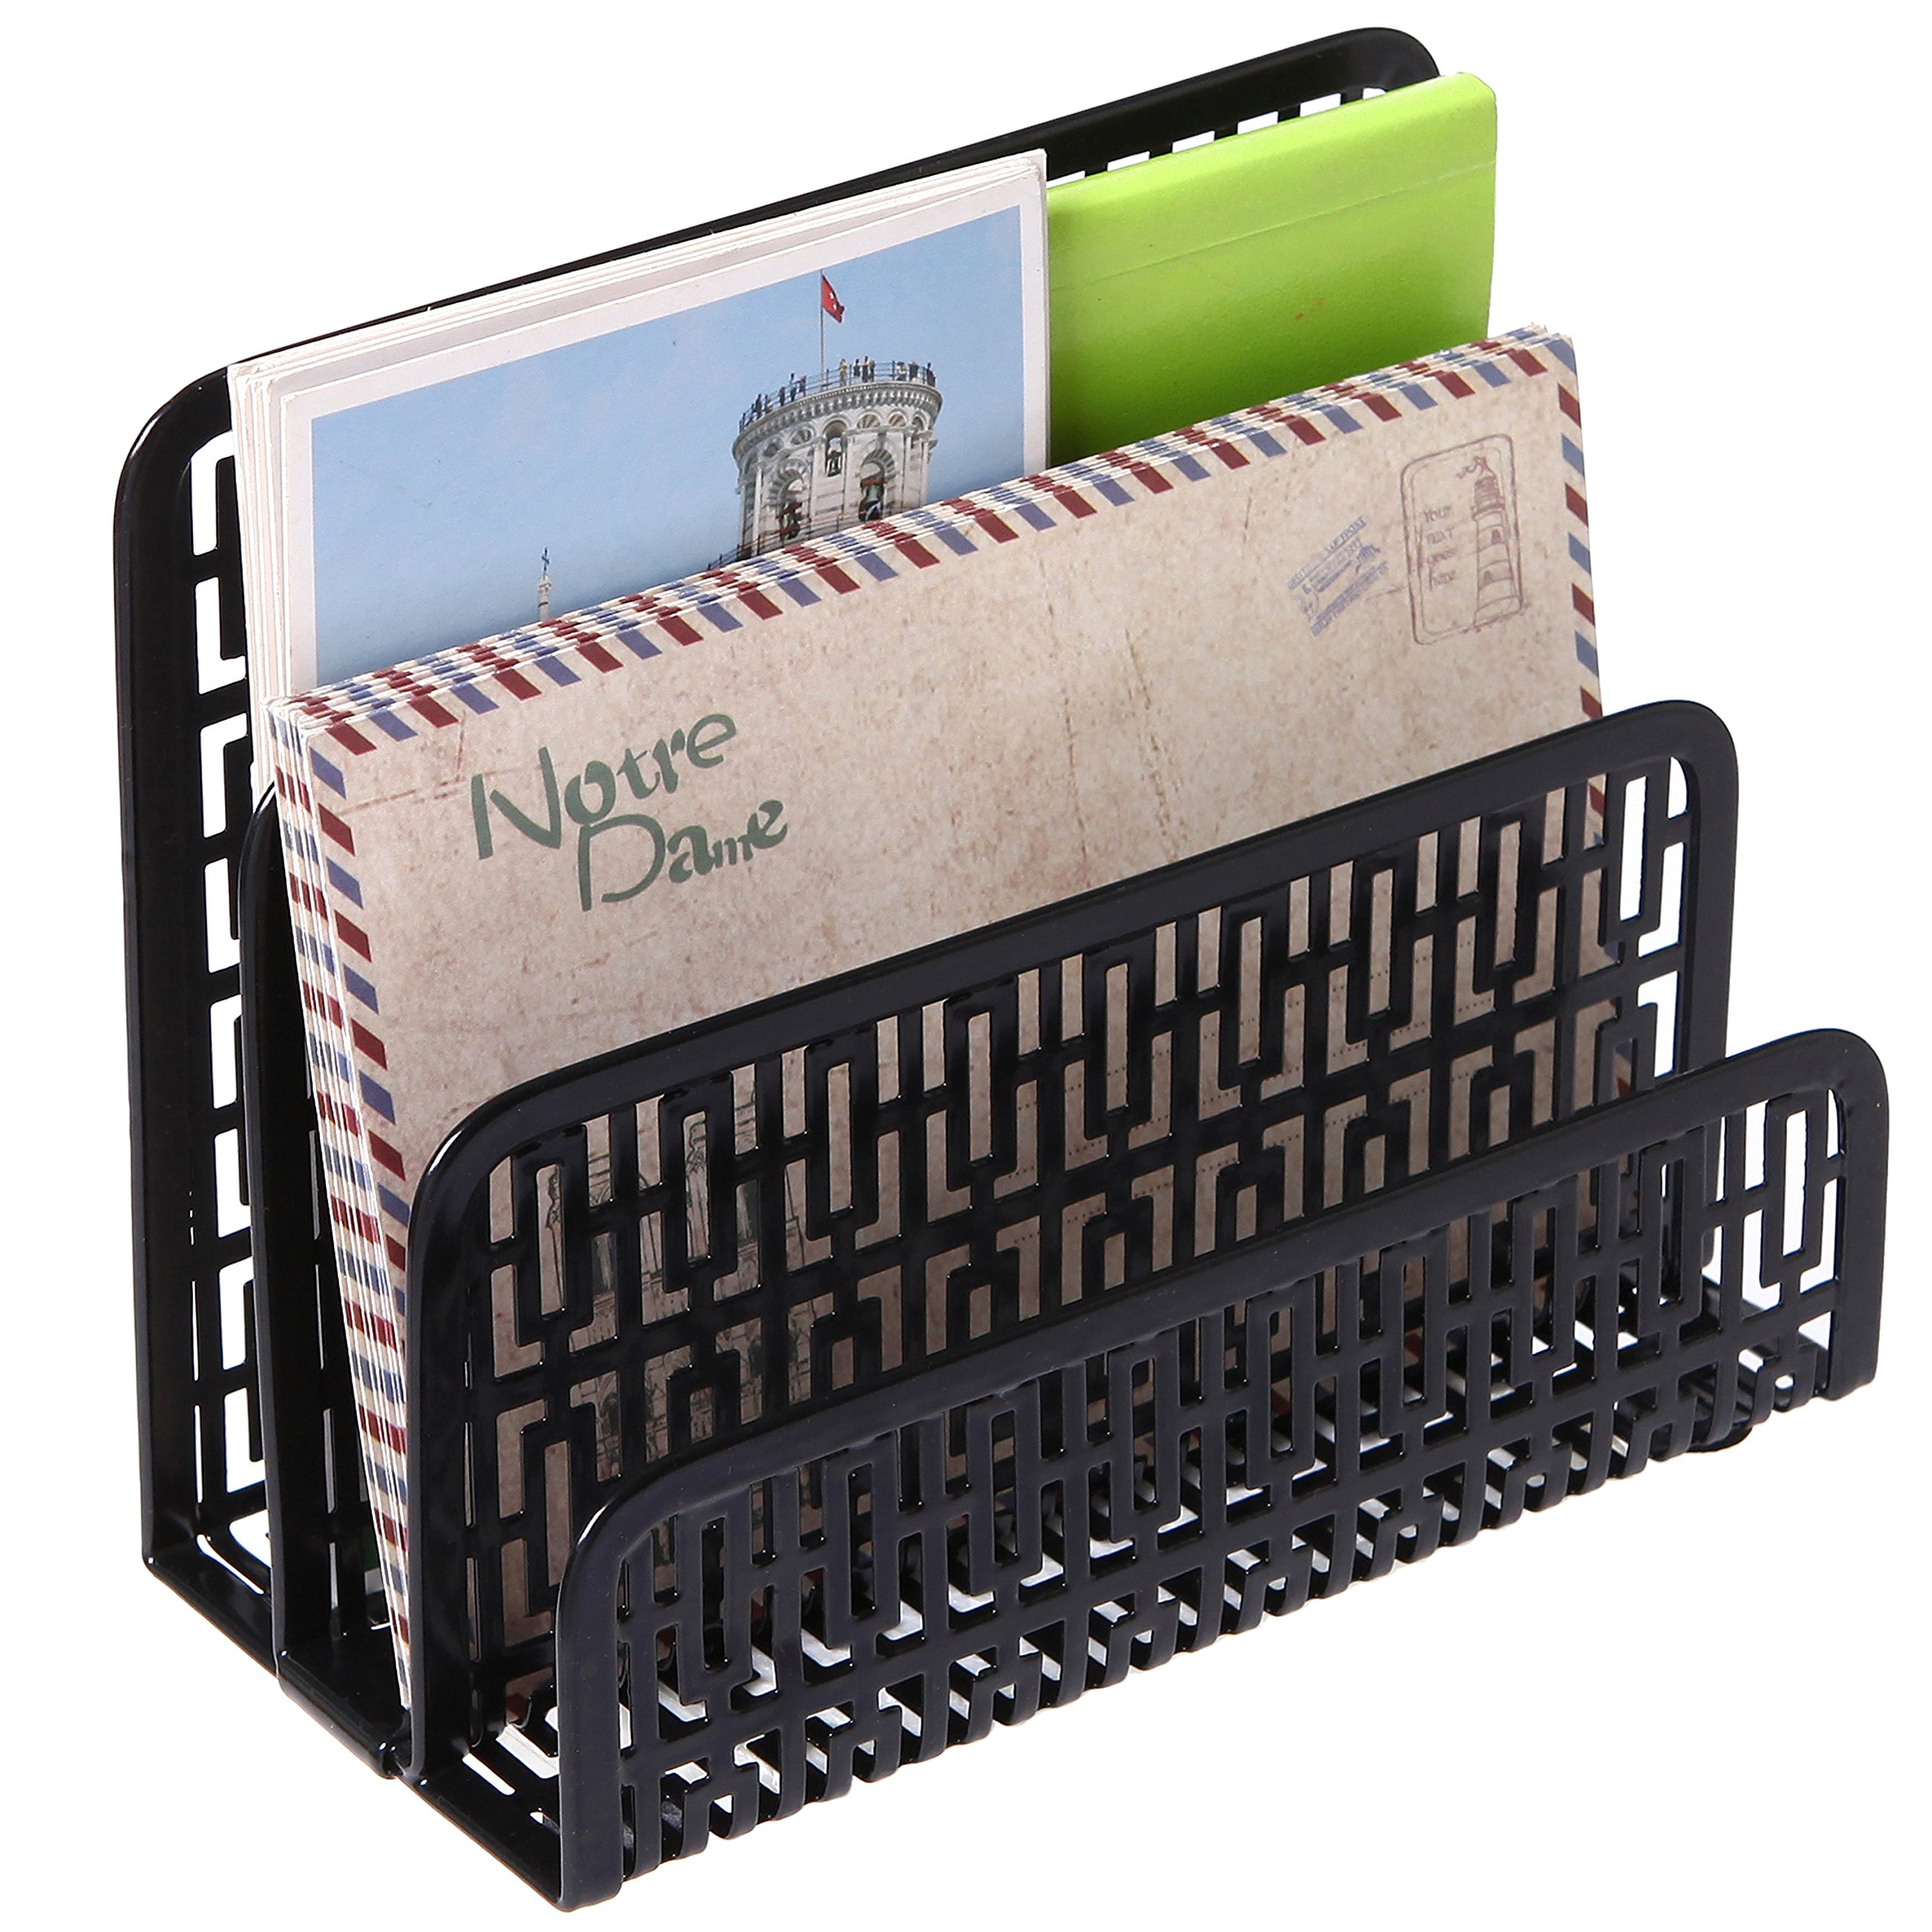 3 Slot Metal Geometric Cut-out Design Desk Letter Mail Sorter, Document Organizer, Black